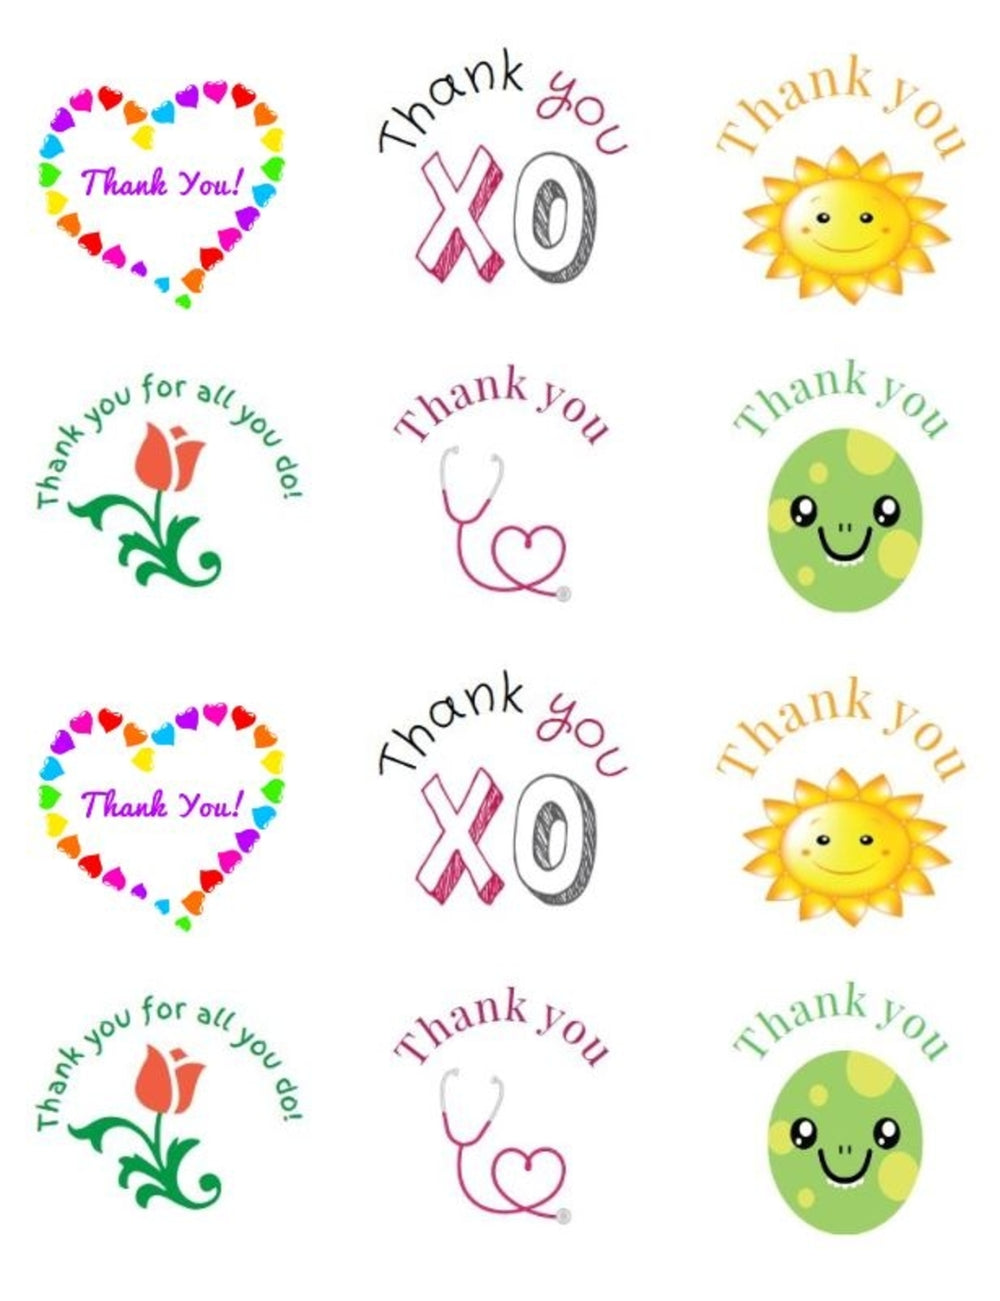 Thank You Stickers Variety Sheet of Stickers – Baking Labels, Cookie Labels, Made with Love, Baked with Love  – Sheet of 12